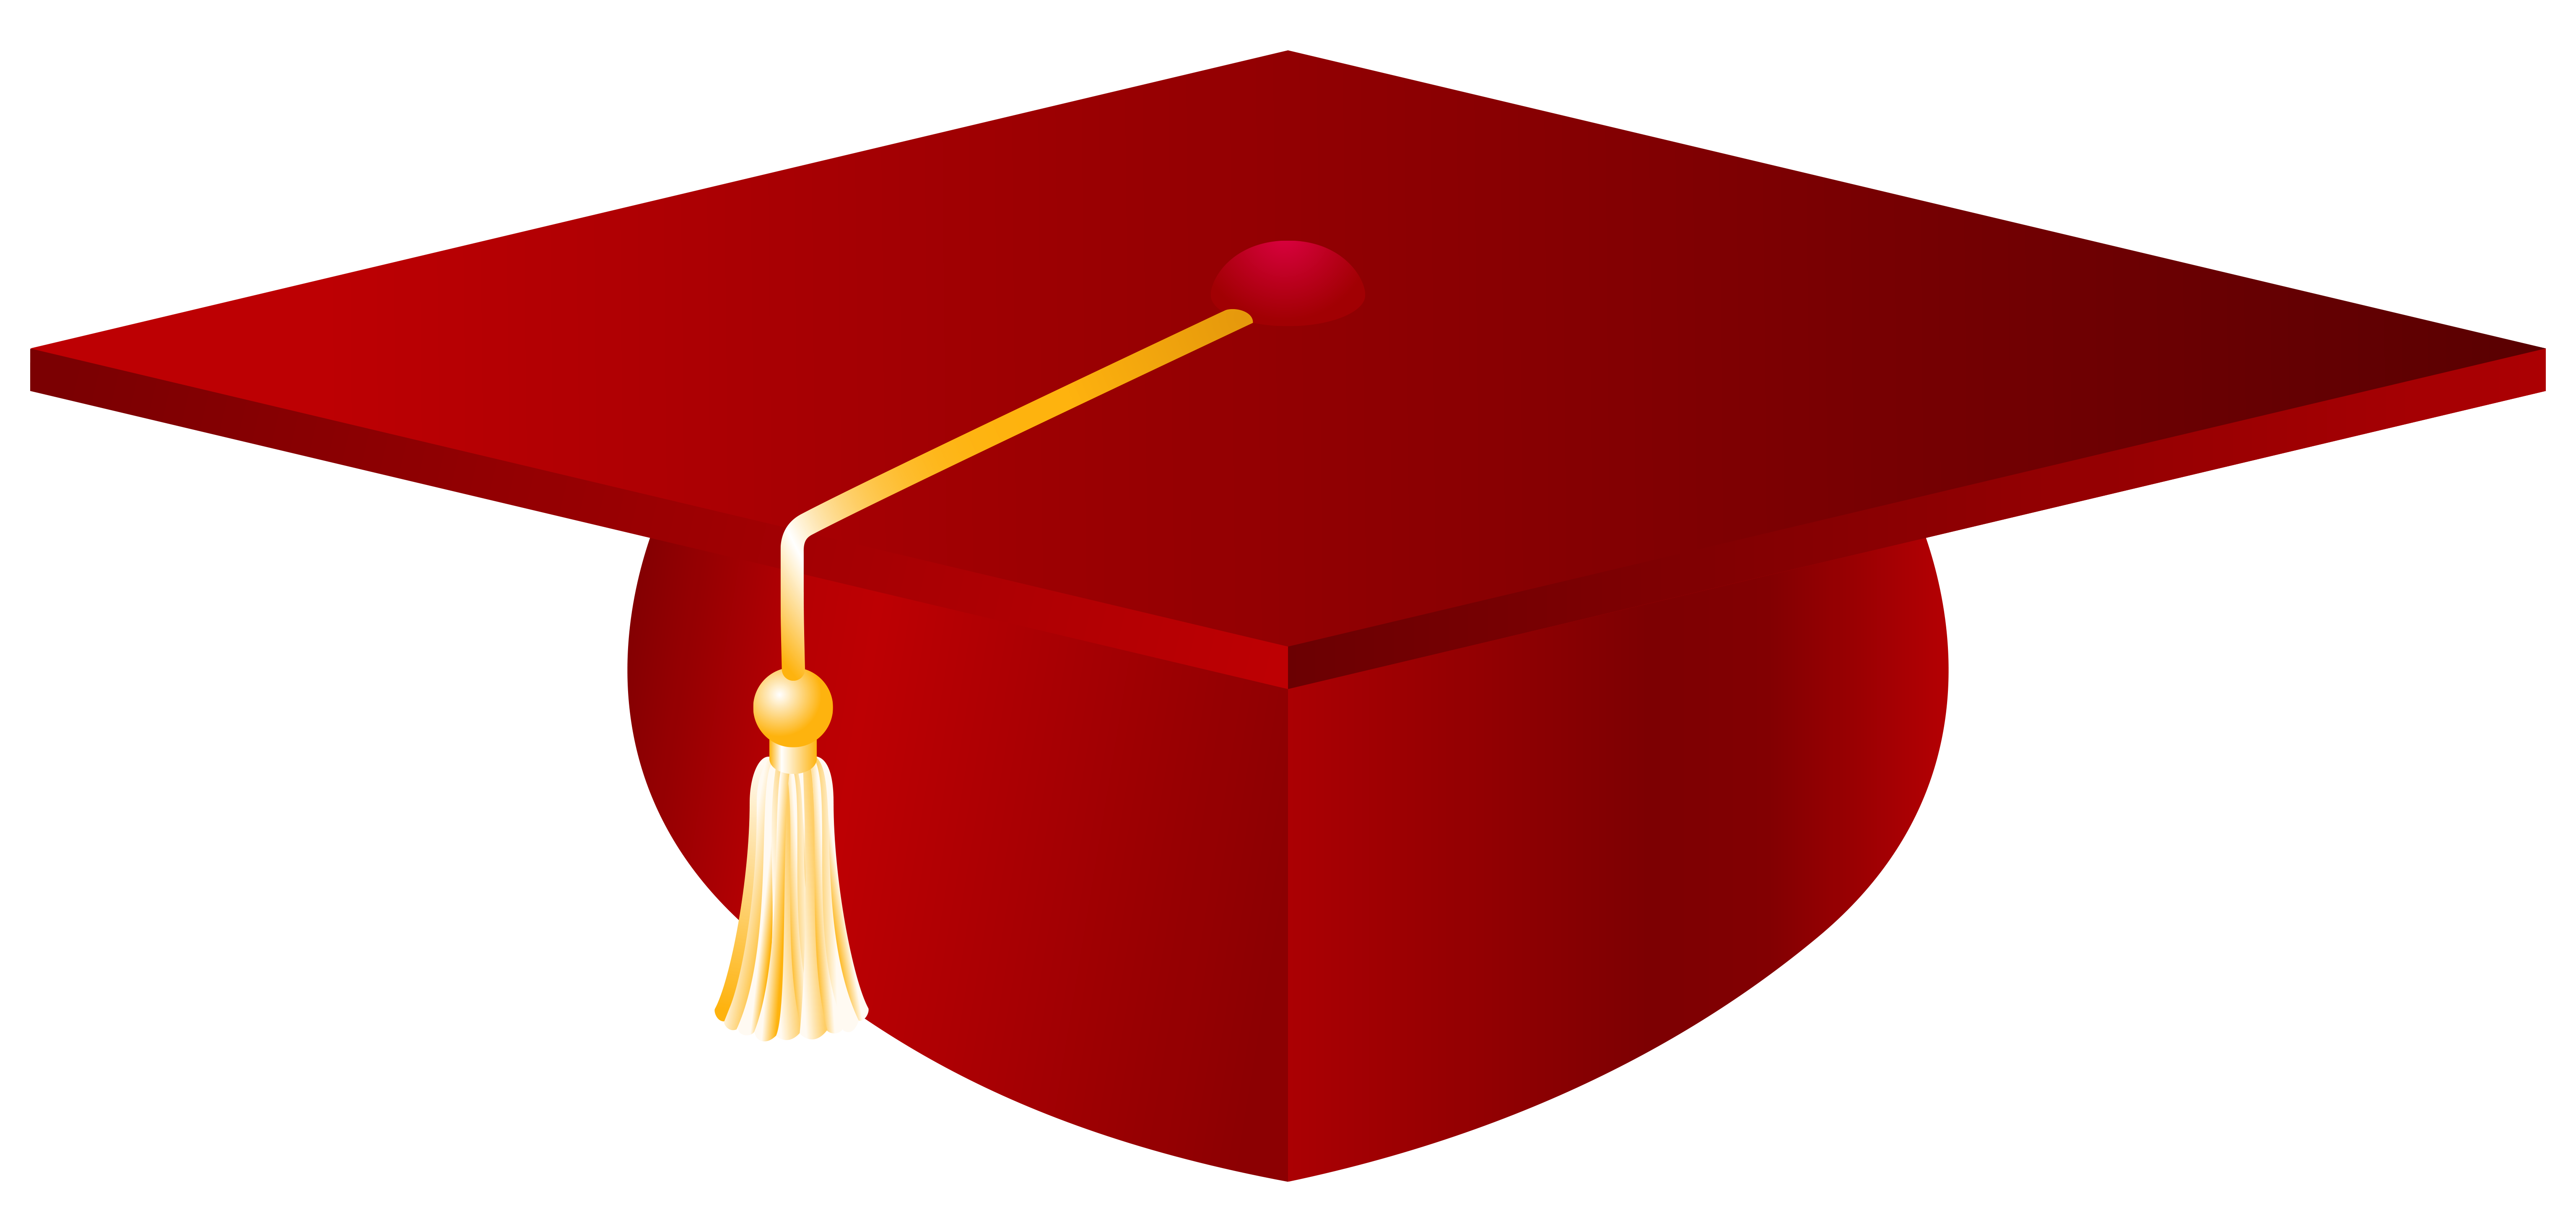 Woman with a hat. Graduation clipart vector